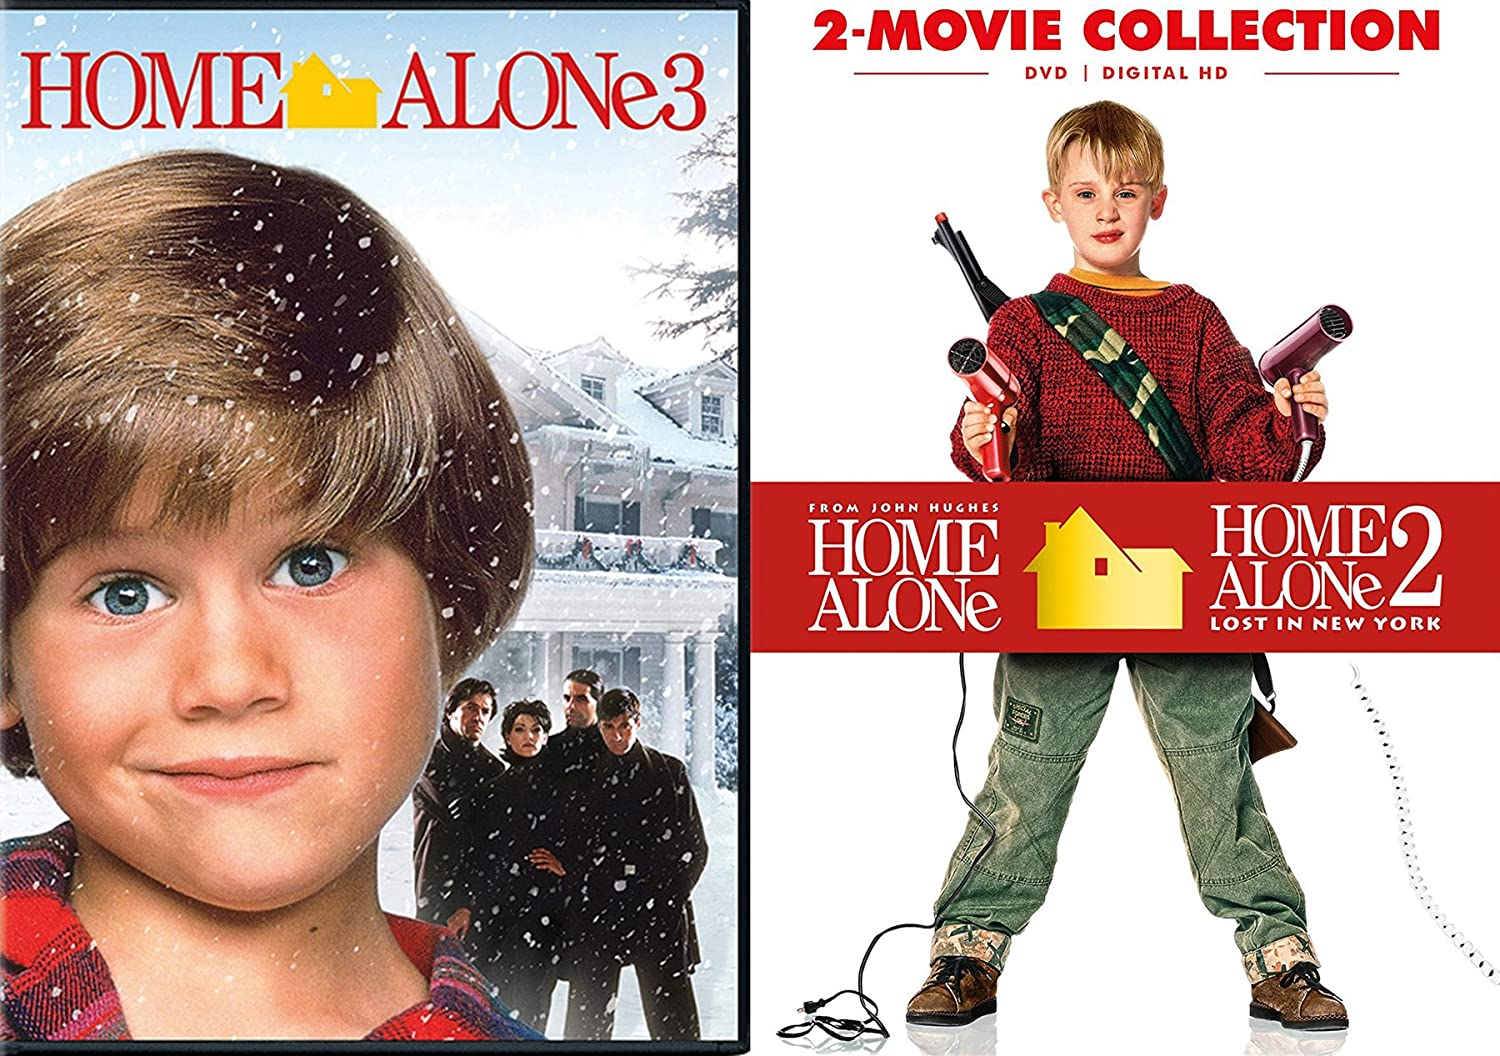 Home Alone 1 & 2 Box + Home Alone 3 Collection Triple Movie DVD Bundle Lost in New York Holiday Set